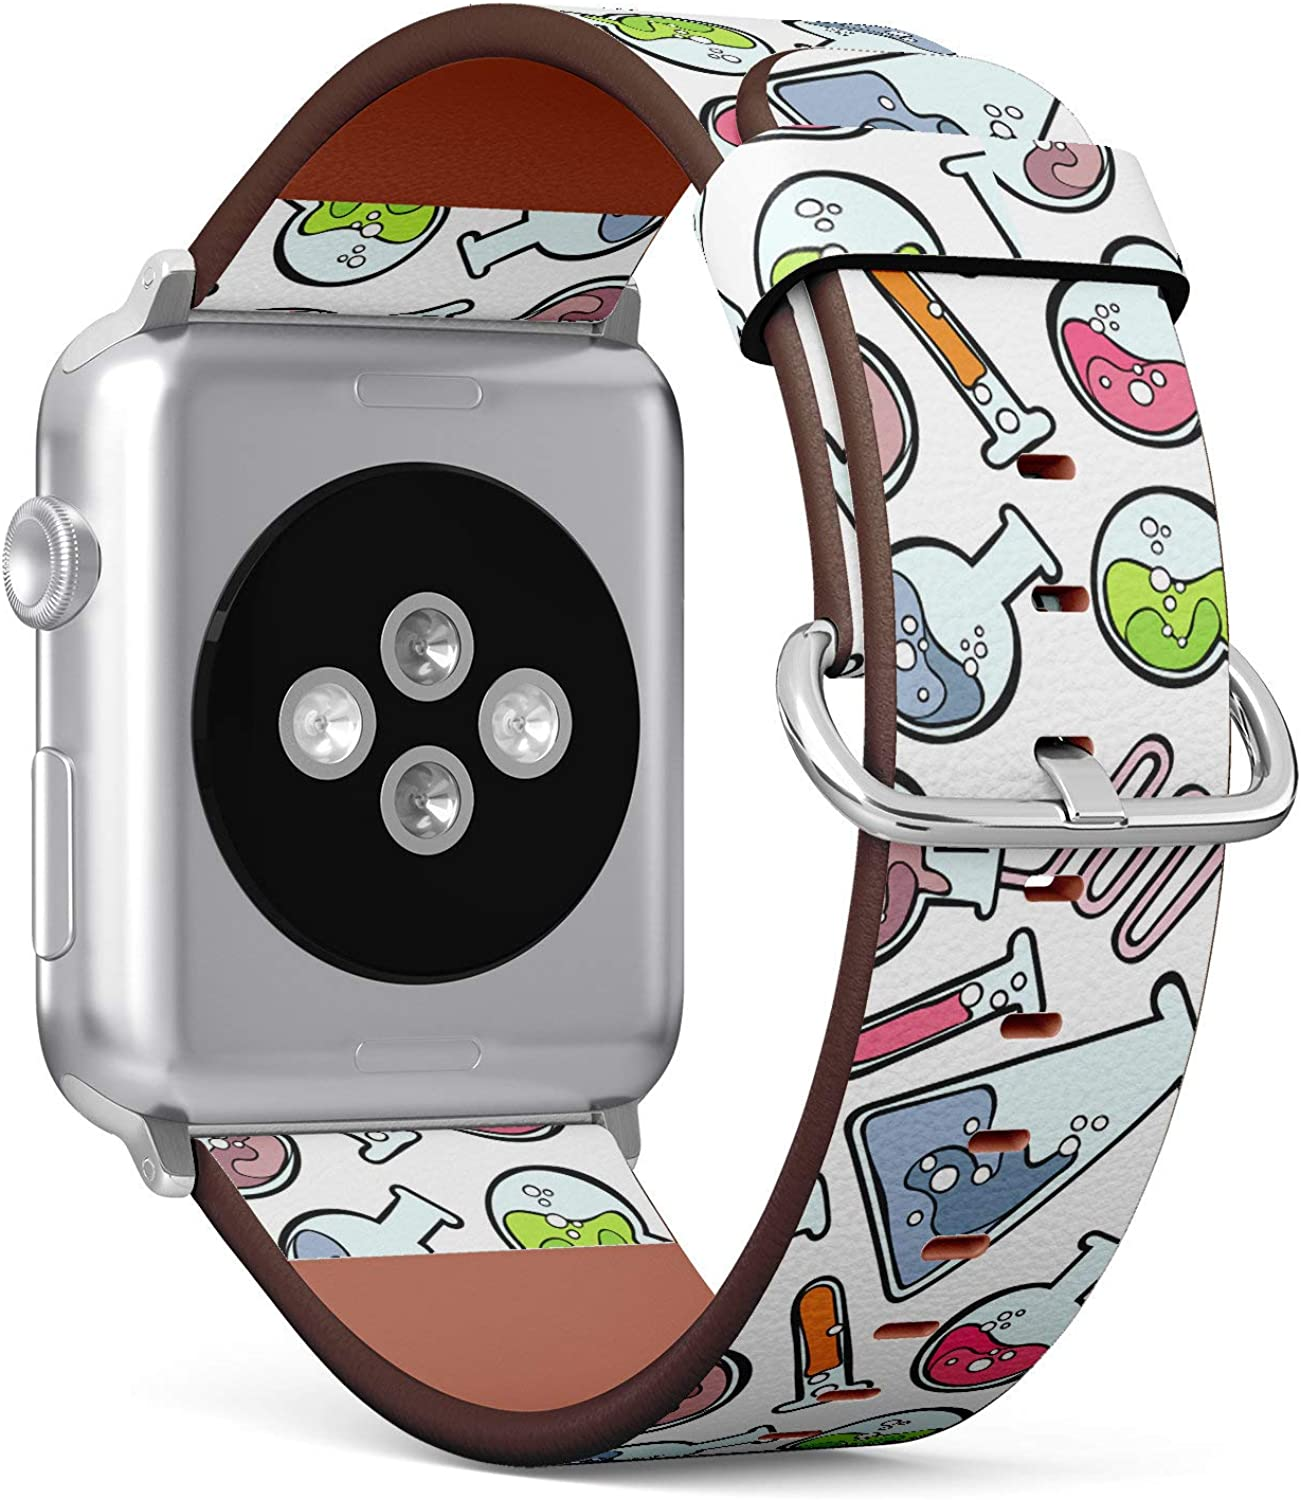 (Chemical lab Test Tubes) Patterned Leather Wristband Strap Compatible with Apple Watch Series 4/3/2/1 gen,Replacement of iWatch 38mm / 40mm Bands